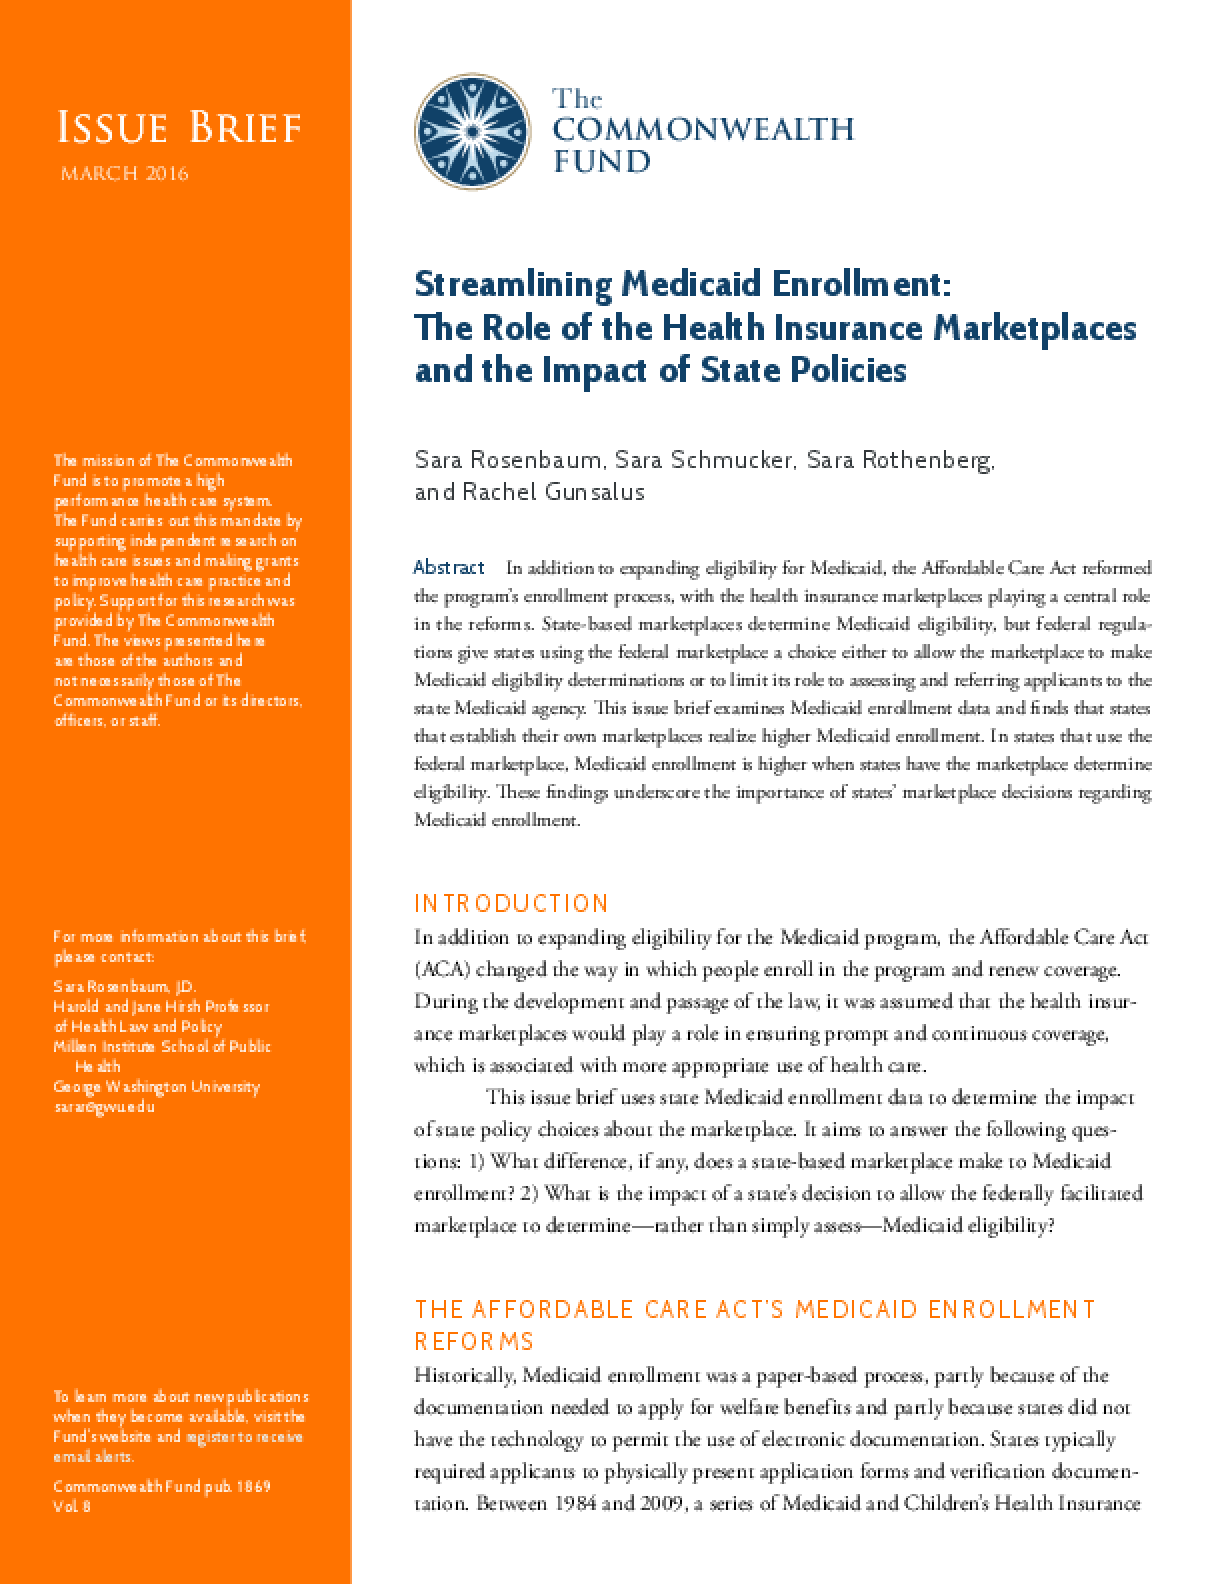 Streamlining Medicaid Enrollment: The Role of the Health Insurance Marketplaces and the Impact of State Policies